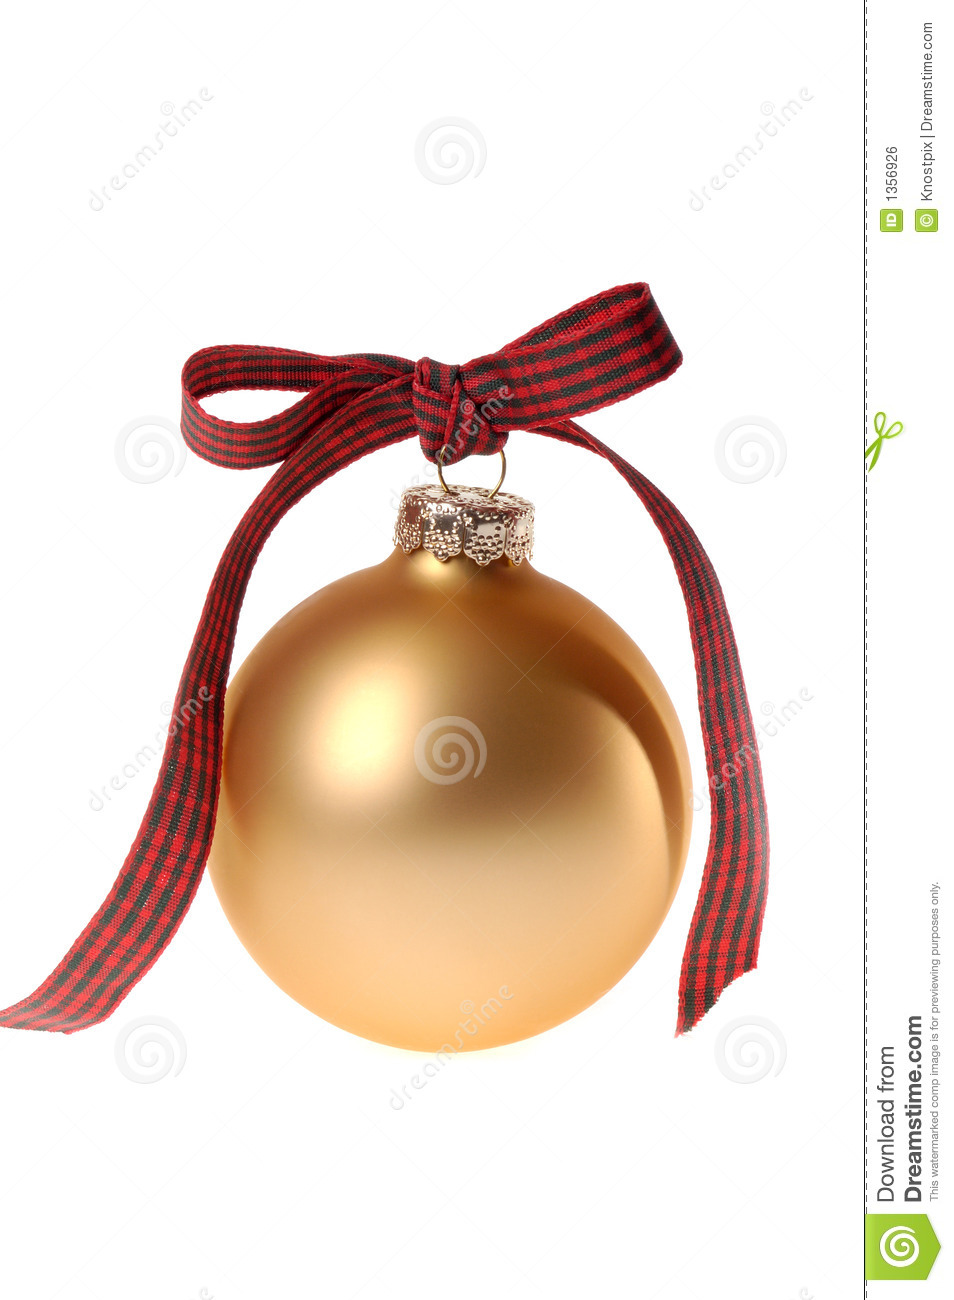 Gold Christmas ornament glass ball with plaid ribbon